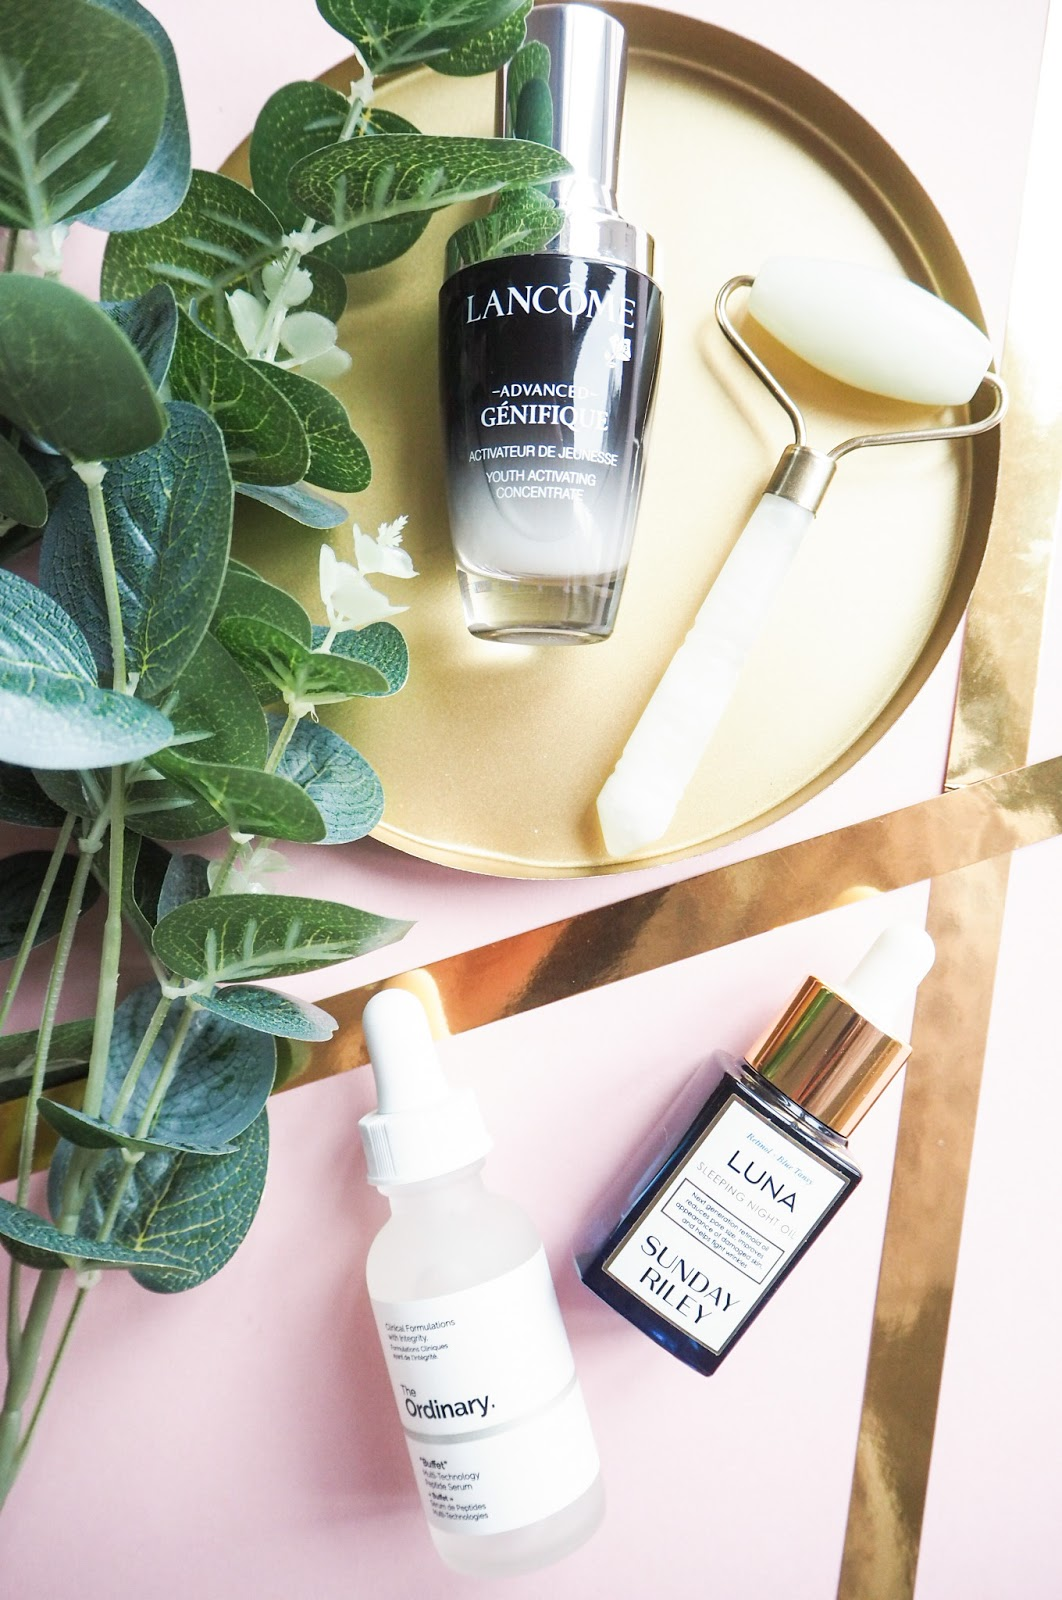 Lancome Advanced Genifique Youth Activating Serum, Sunday Riley Luna Sleeping Night Oil, The Ordinary Buffet